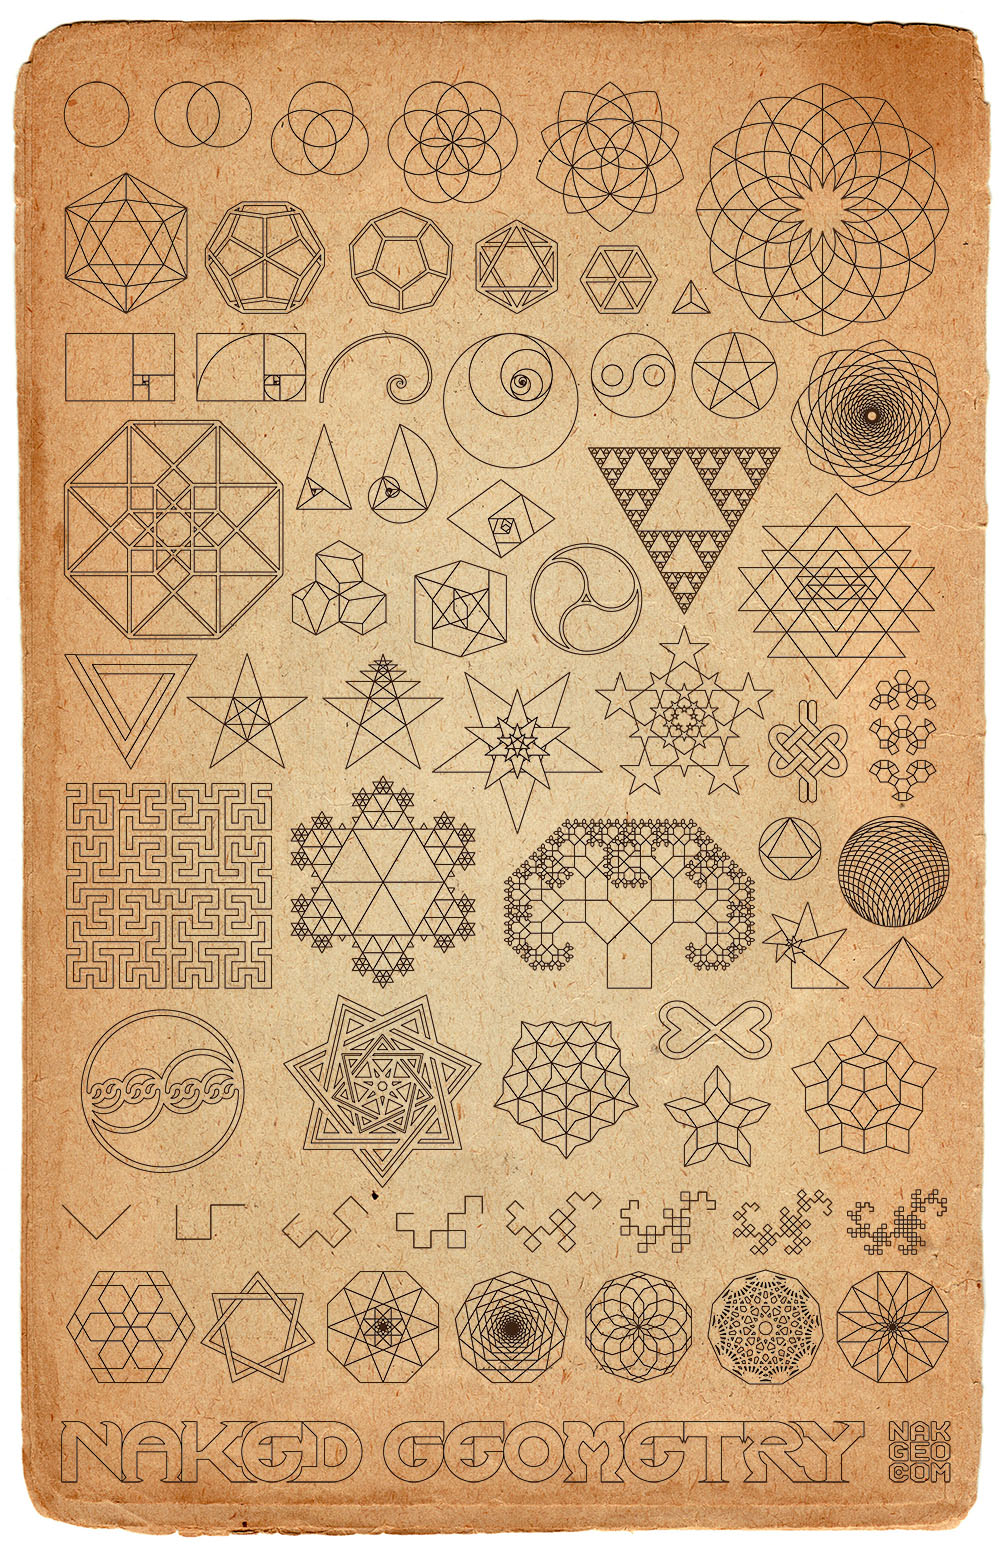 MAGIC by Grady McFerrin | Book Art - Illustrated boards ...  |Ancient Sacred Geometry